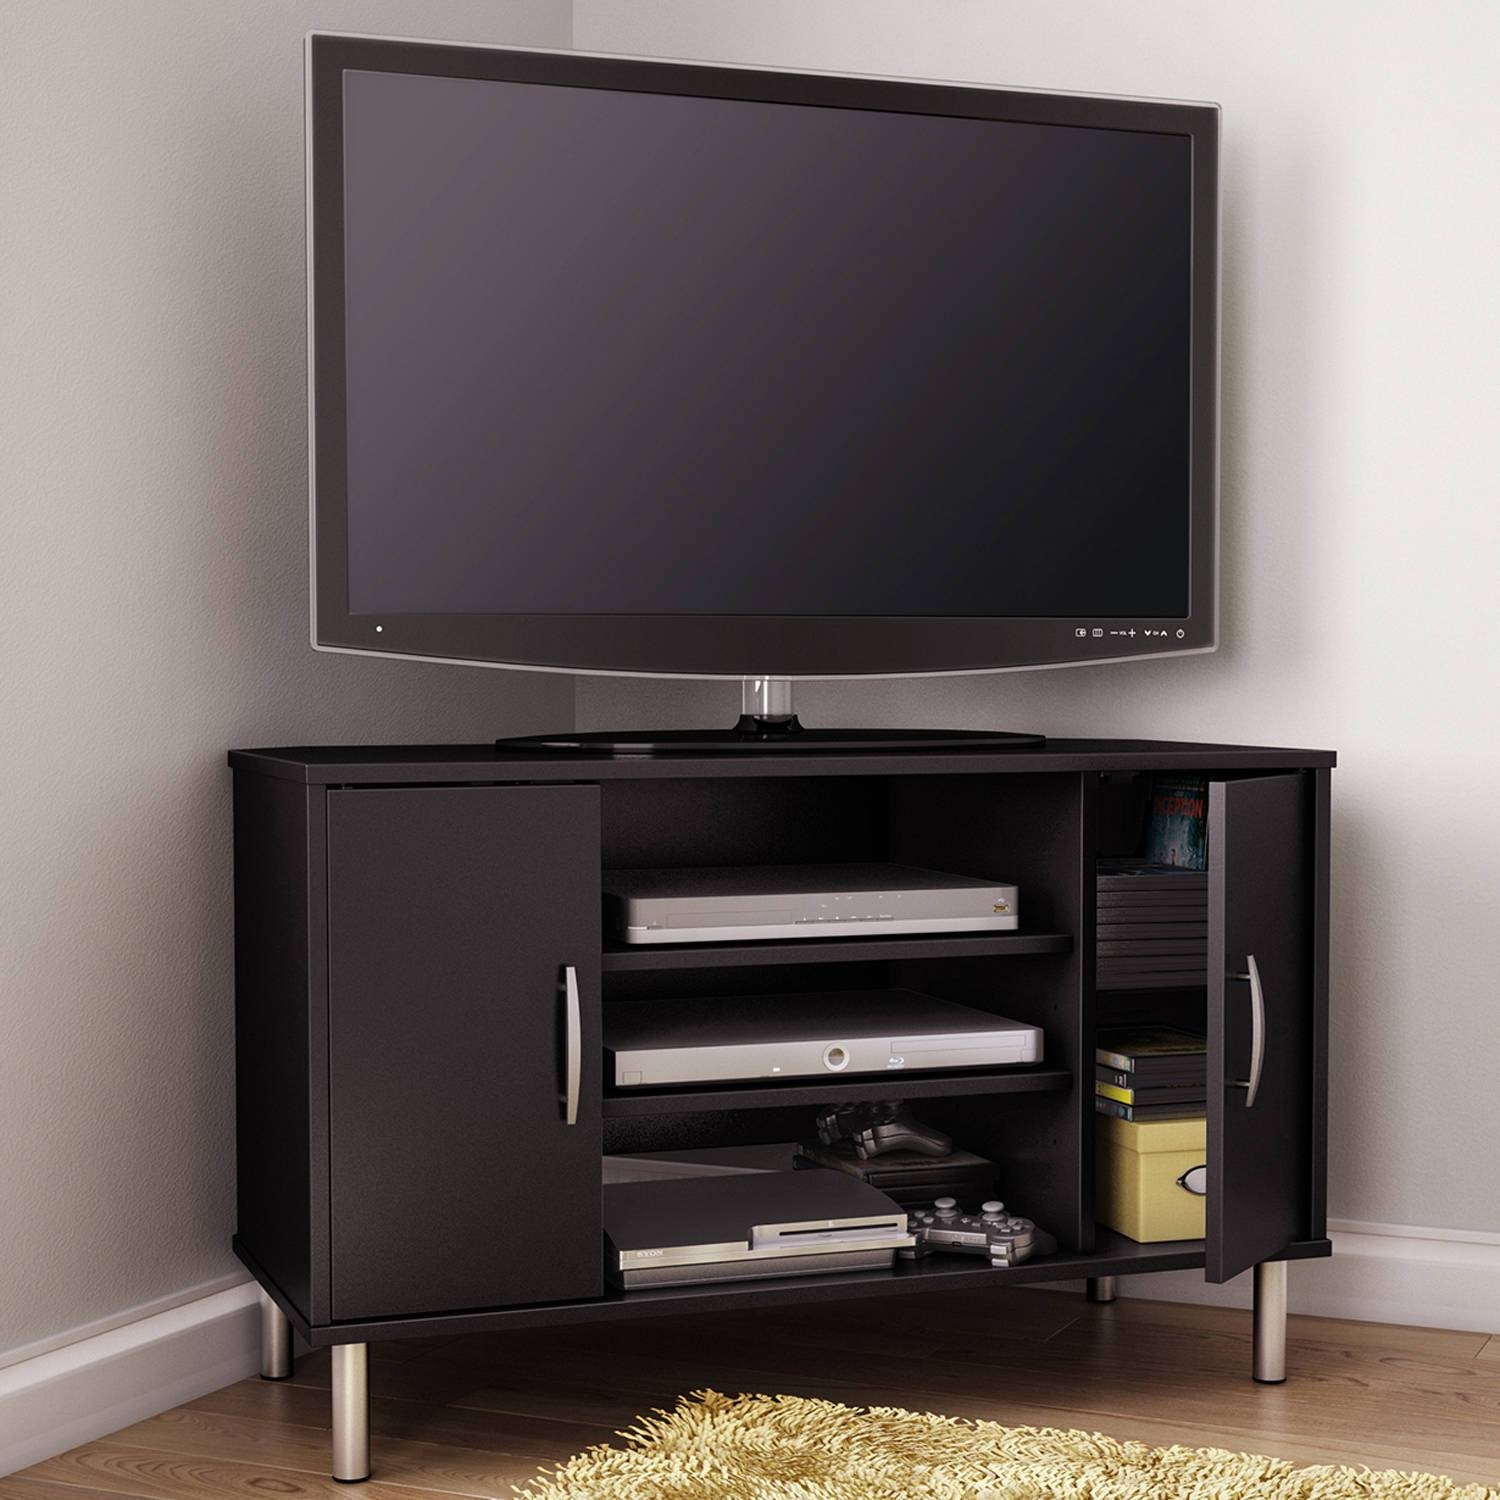 Storage Cabinets Ideas : Corner Tv Stand Designs Choosing The With Cornet Tv Stands (View 9 of 15)